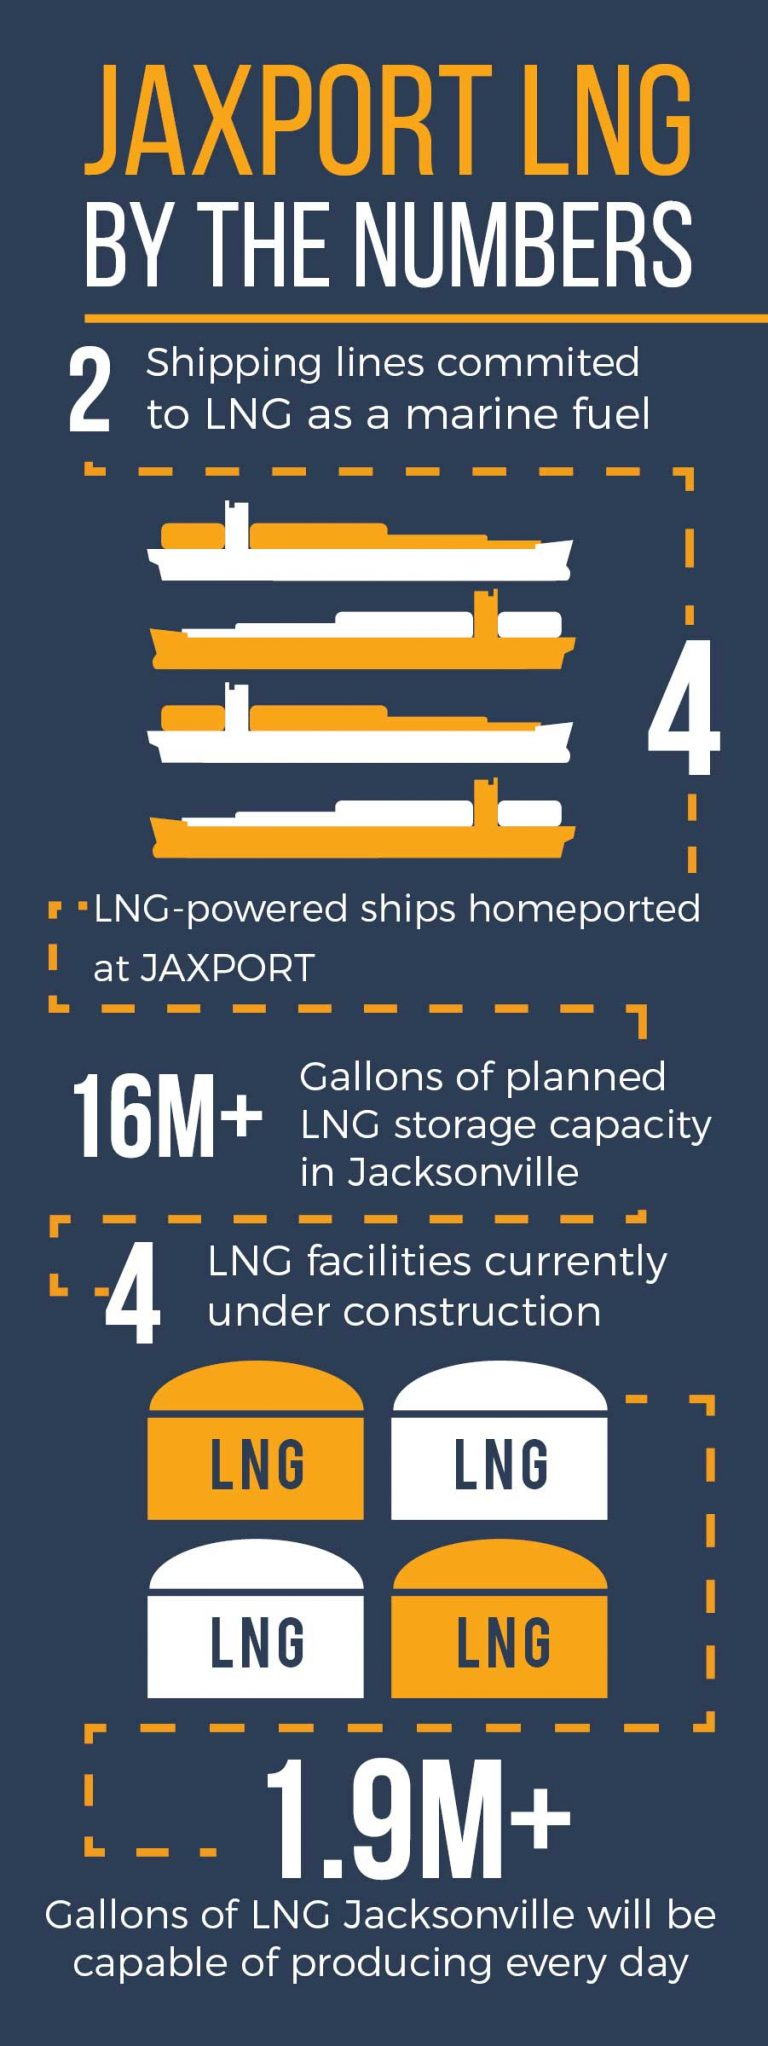 JAXPORT LNG by the numbers infographic